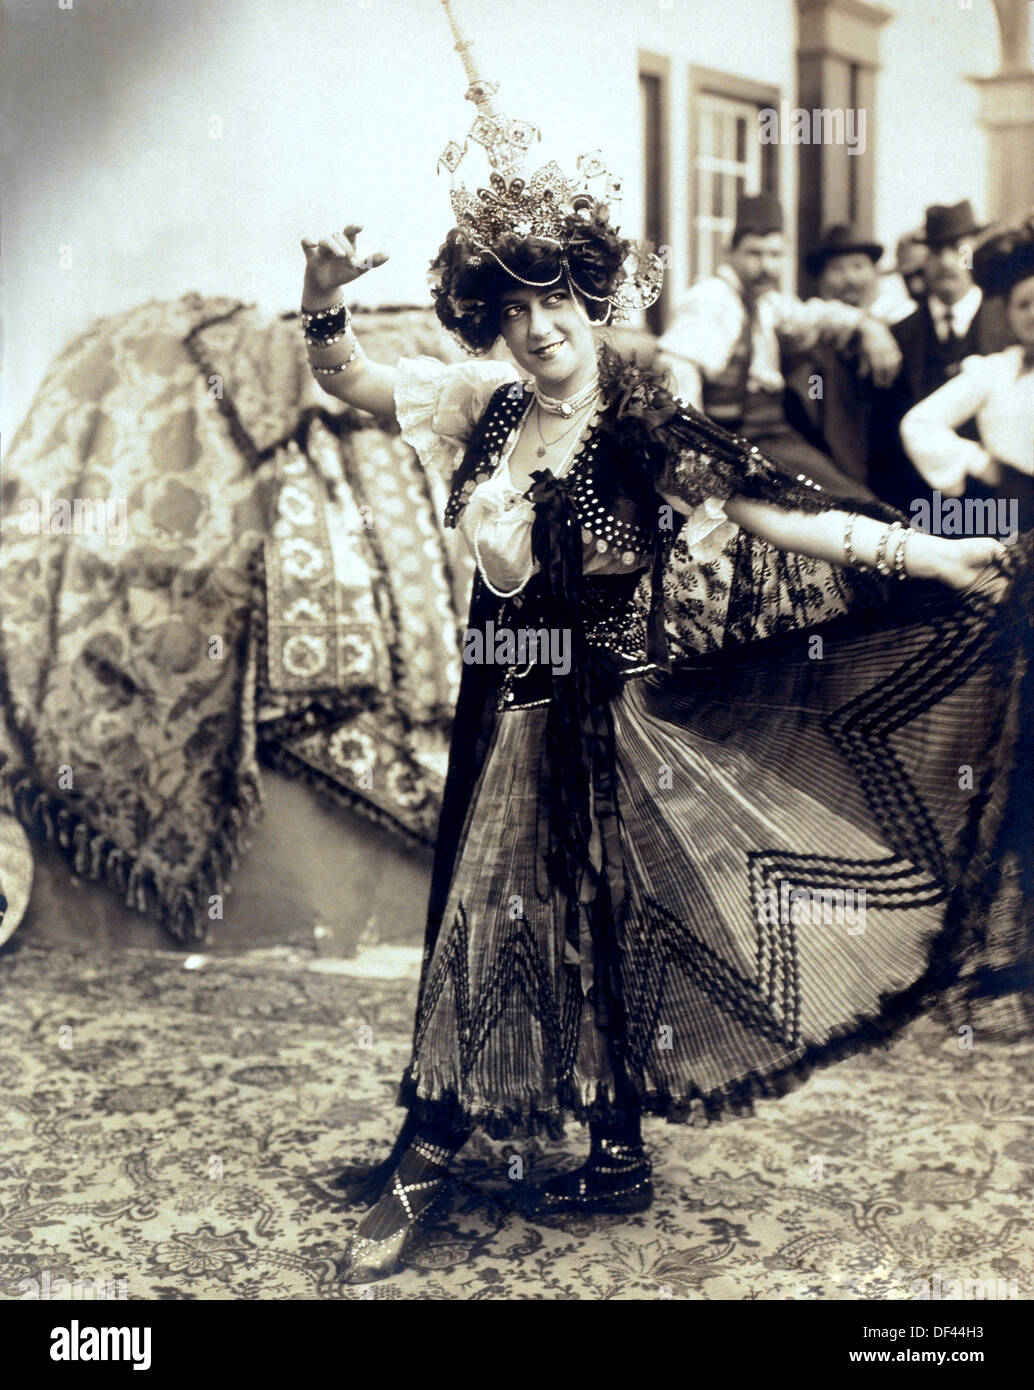 Female Dancer at the Louisiana Purchase Exposition, Also known as Saint Louis World's Fair, Saint Louis, Missouri, USA, 1904 - Stock Image